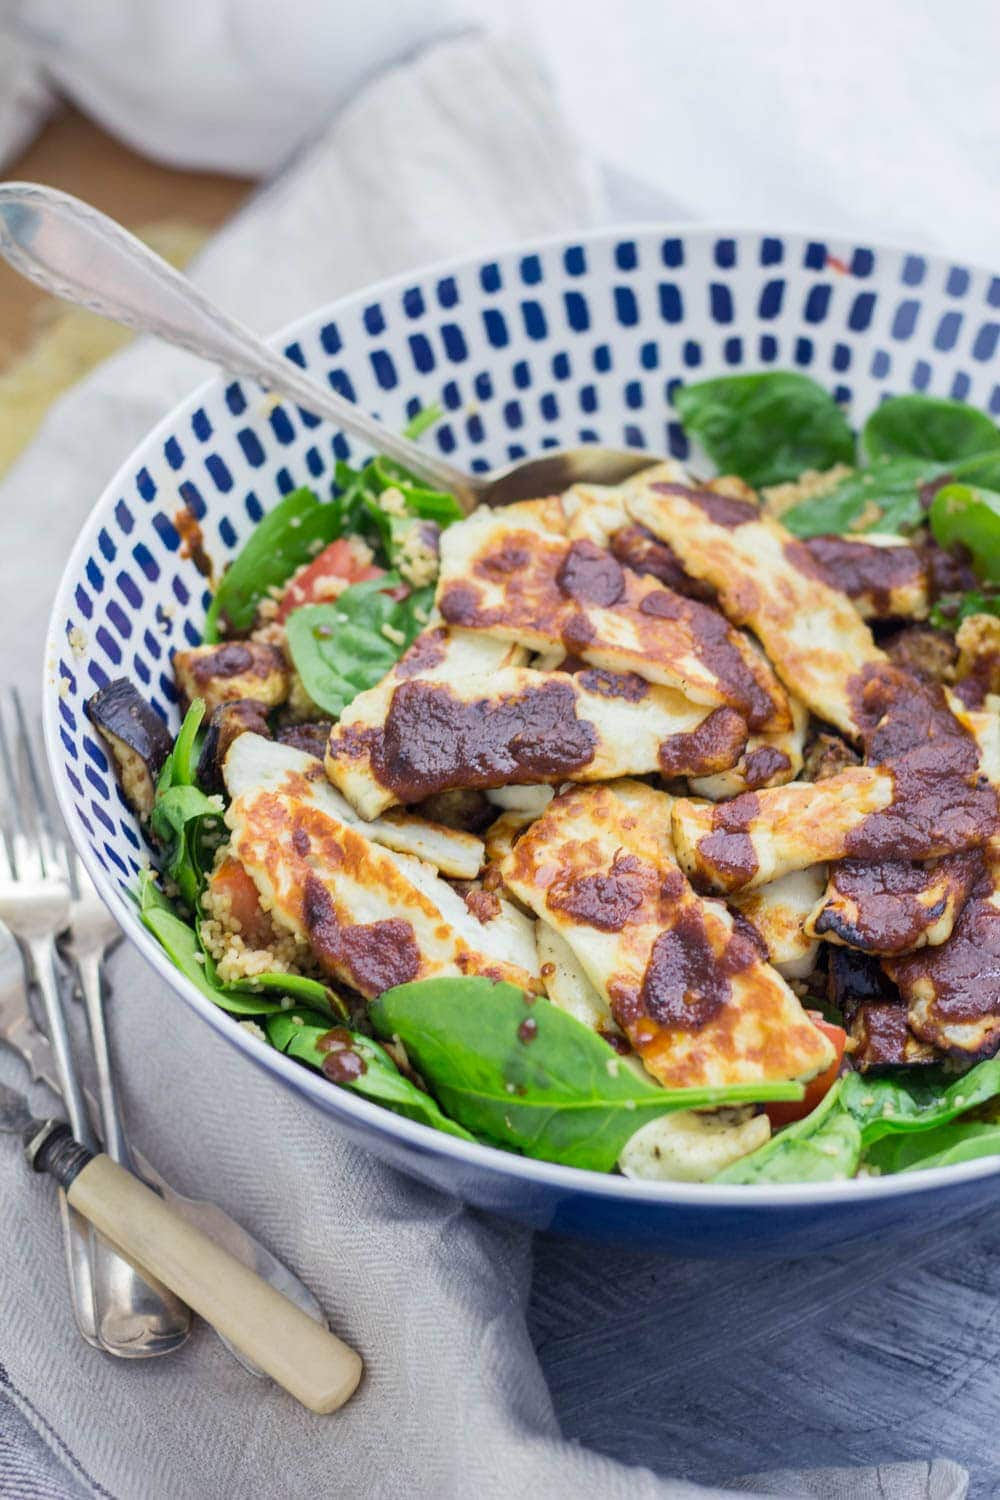 This harissa halloumi salad is so quick to make and is bursting with healthy ingredients! The salty halloumi is the perfect addition to this vegetarian dish. #vegetarian #salad #healthy #halloumi